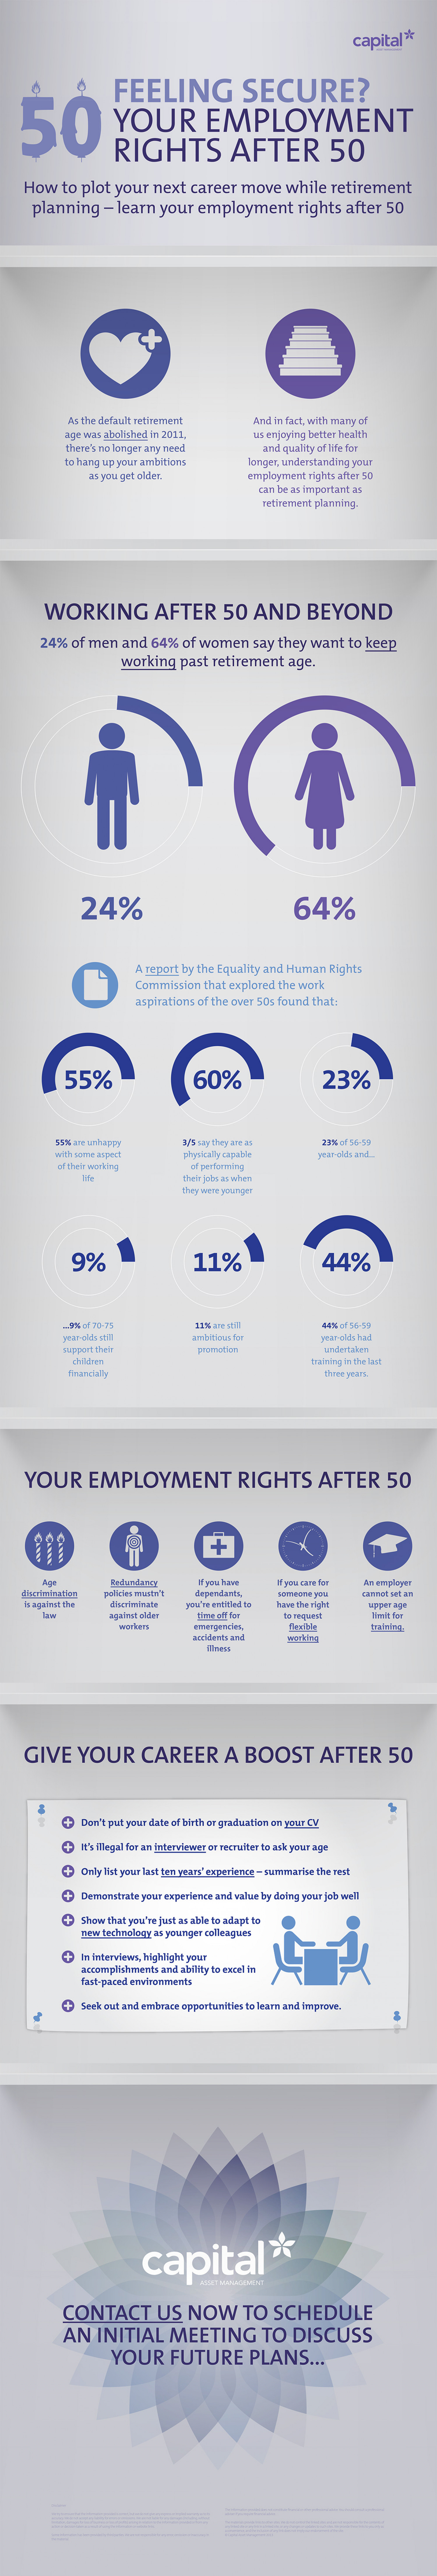 Feeling Secure, your employment rights After 50 Infographic